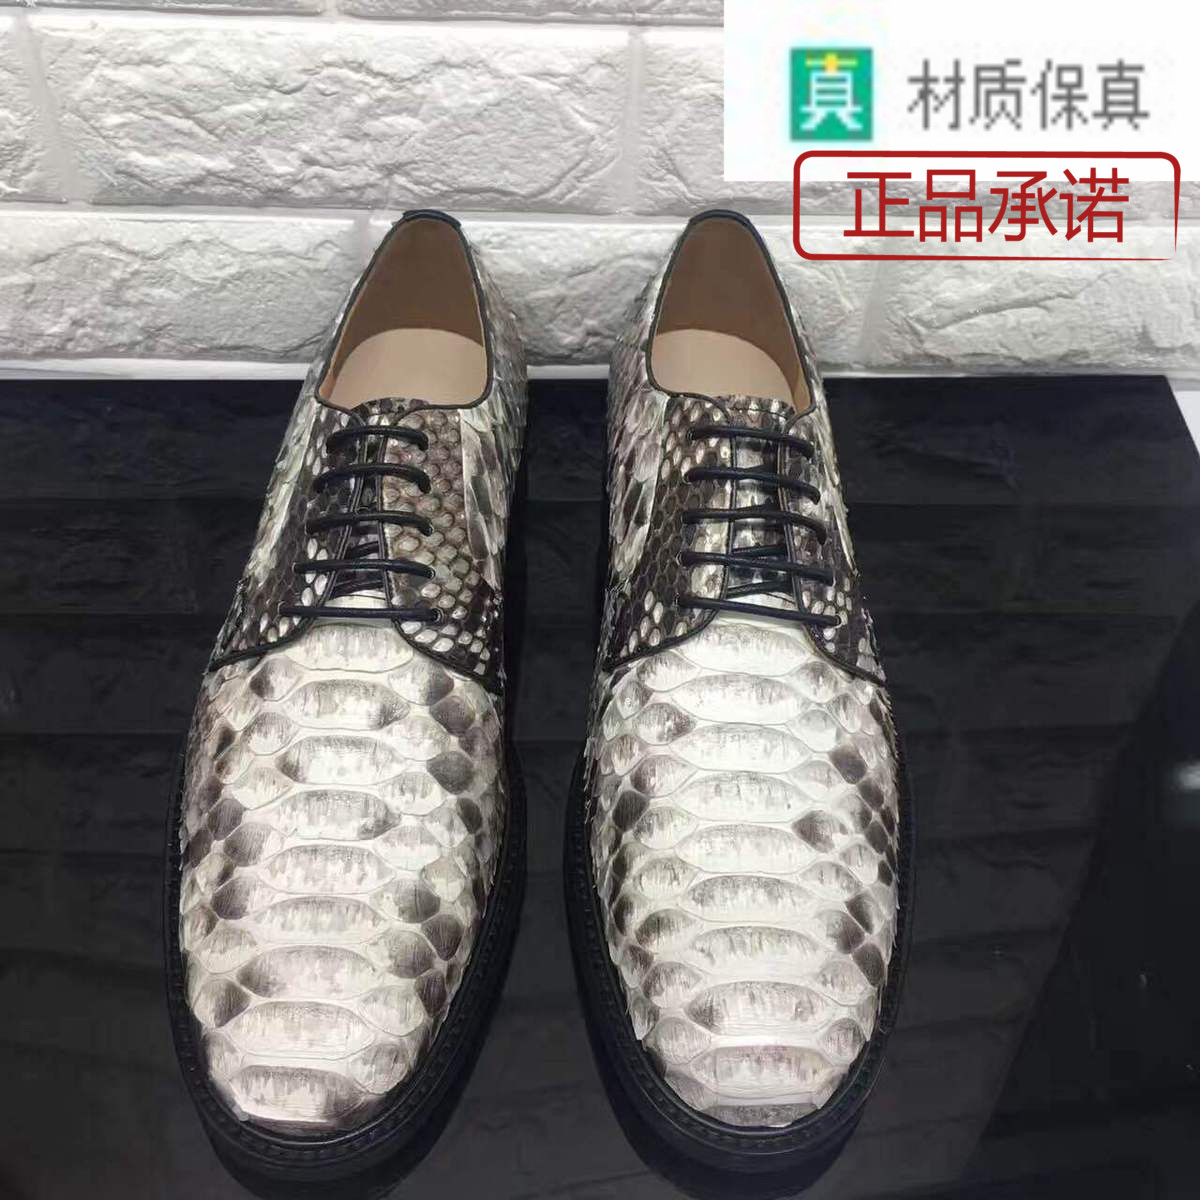 2017 new snake skin mens shoes business fashion dress casual shoes flat bottomed round head lace up mens British shoes single shoes